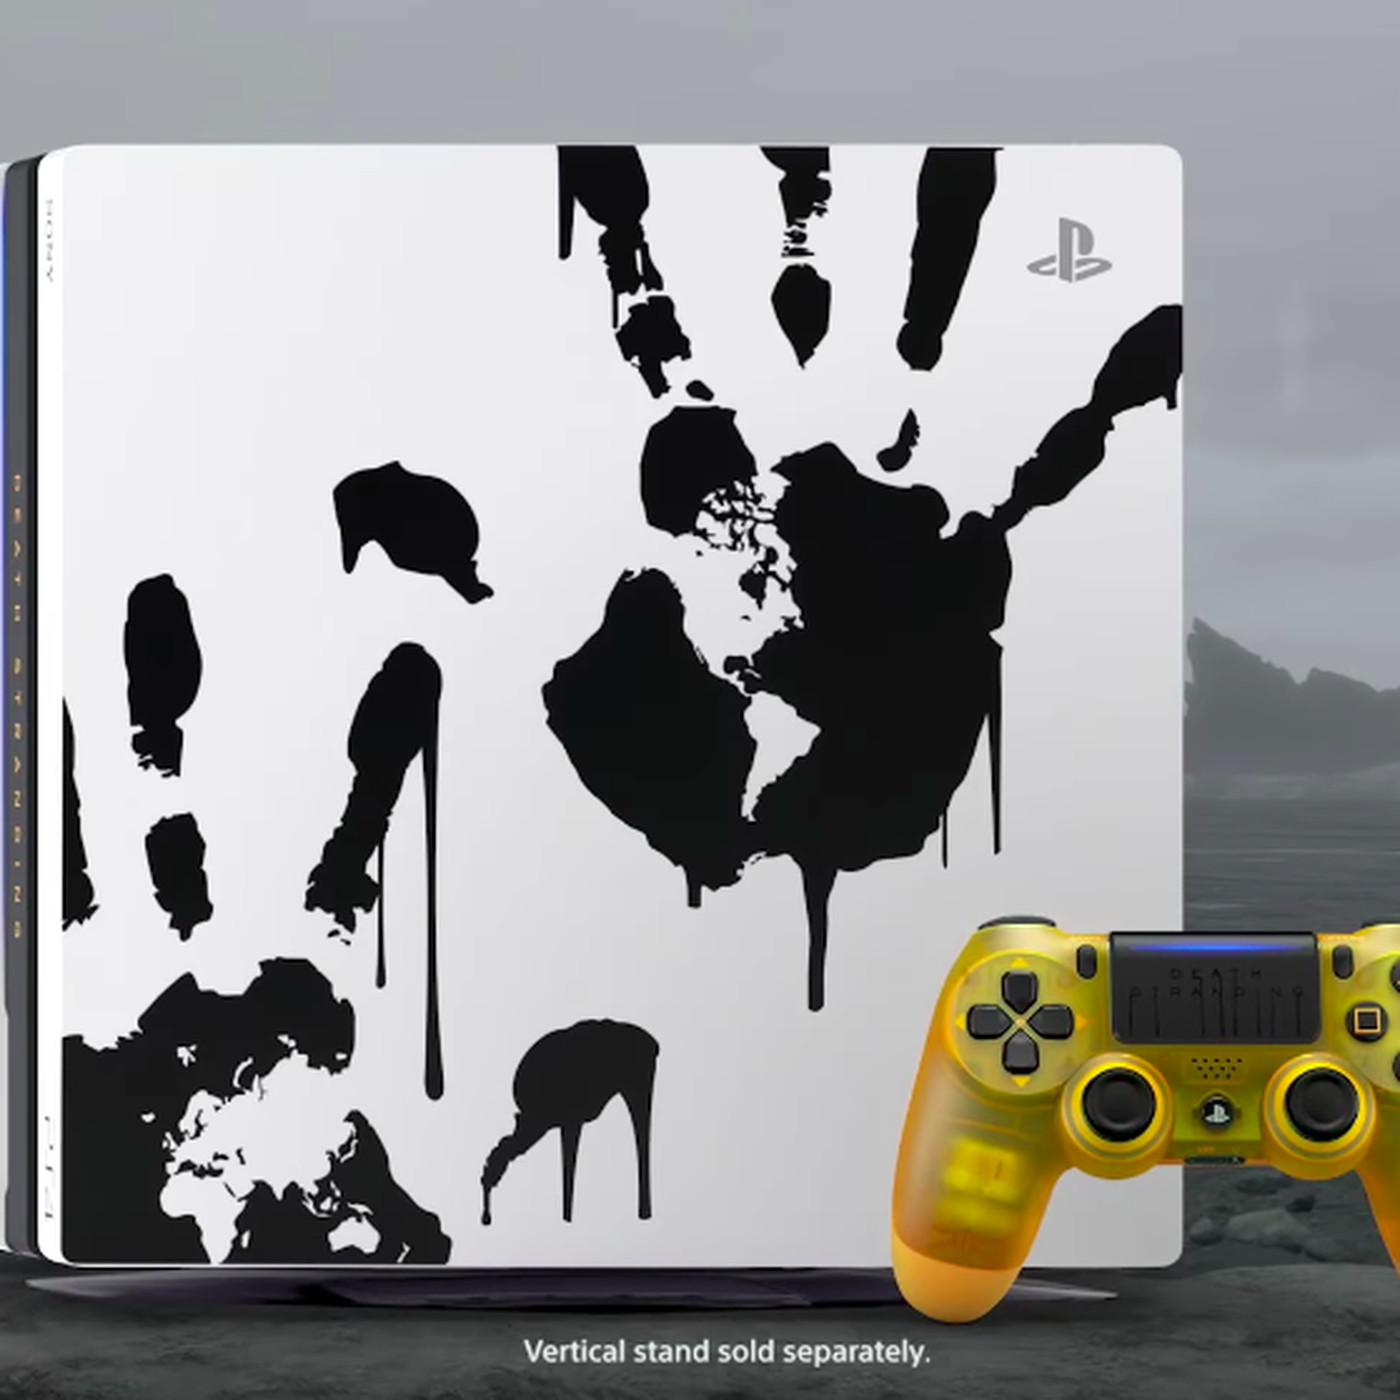 Sony S Death Stranding Ps4 Has A Translucent Bb Pod Controller The Verge